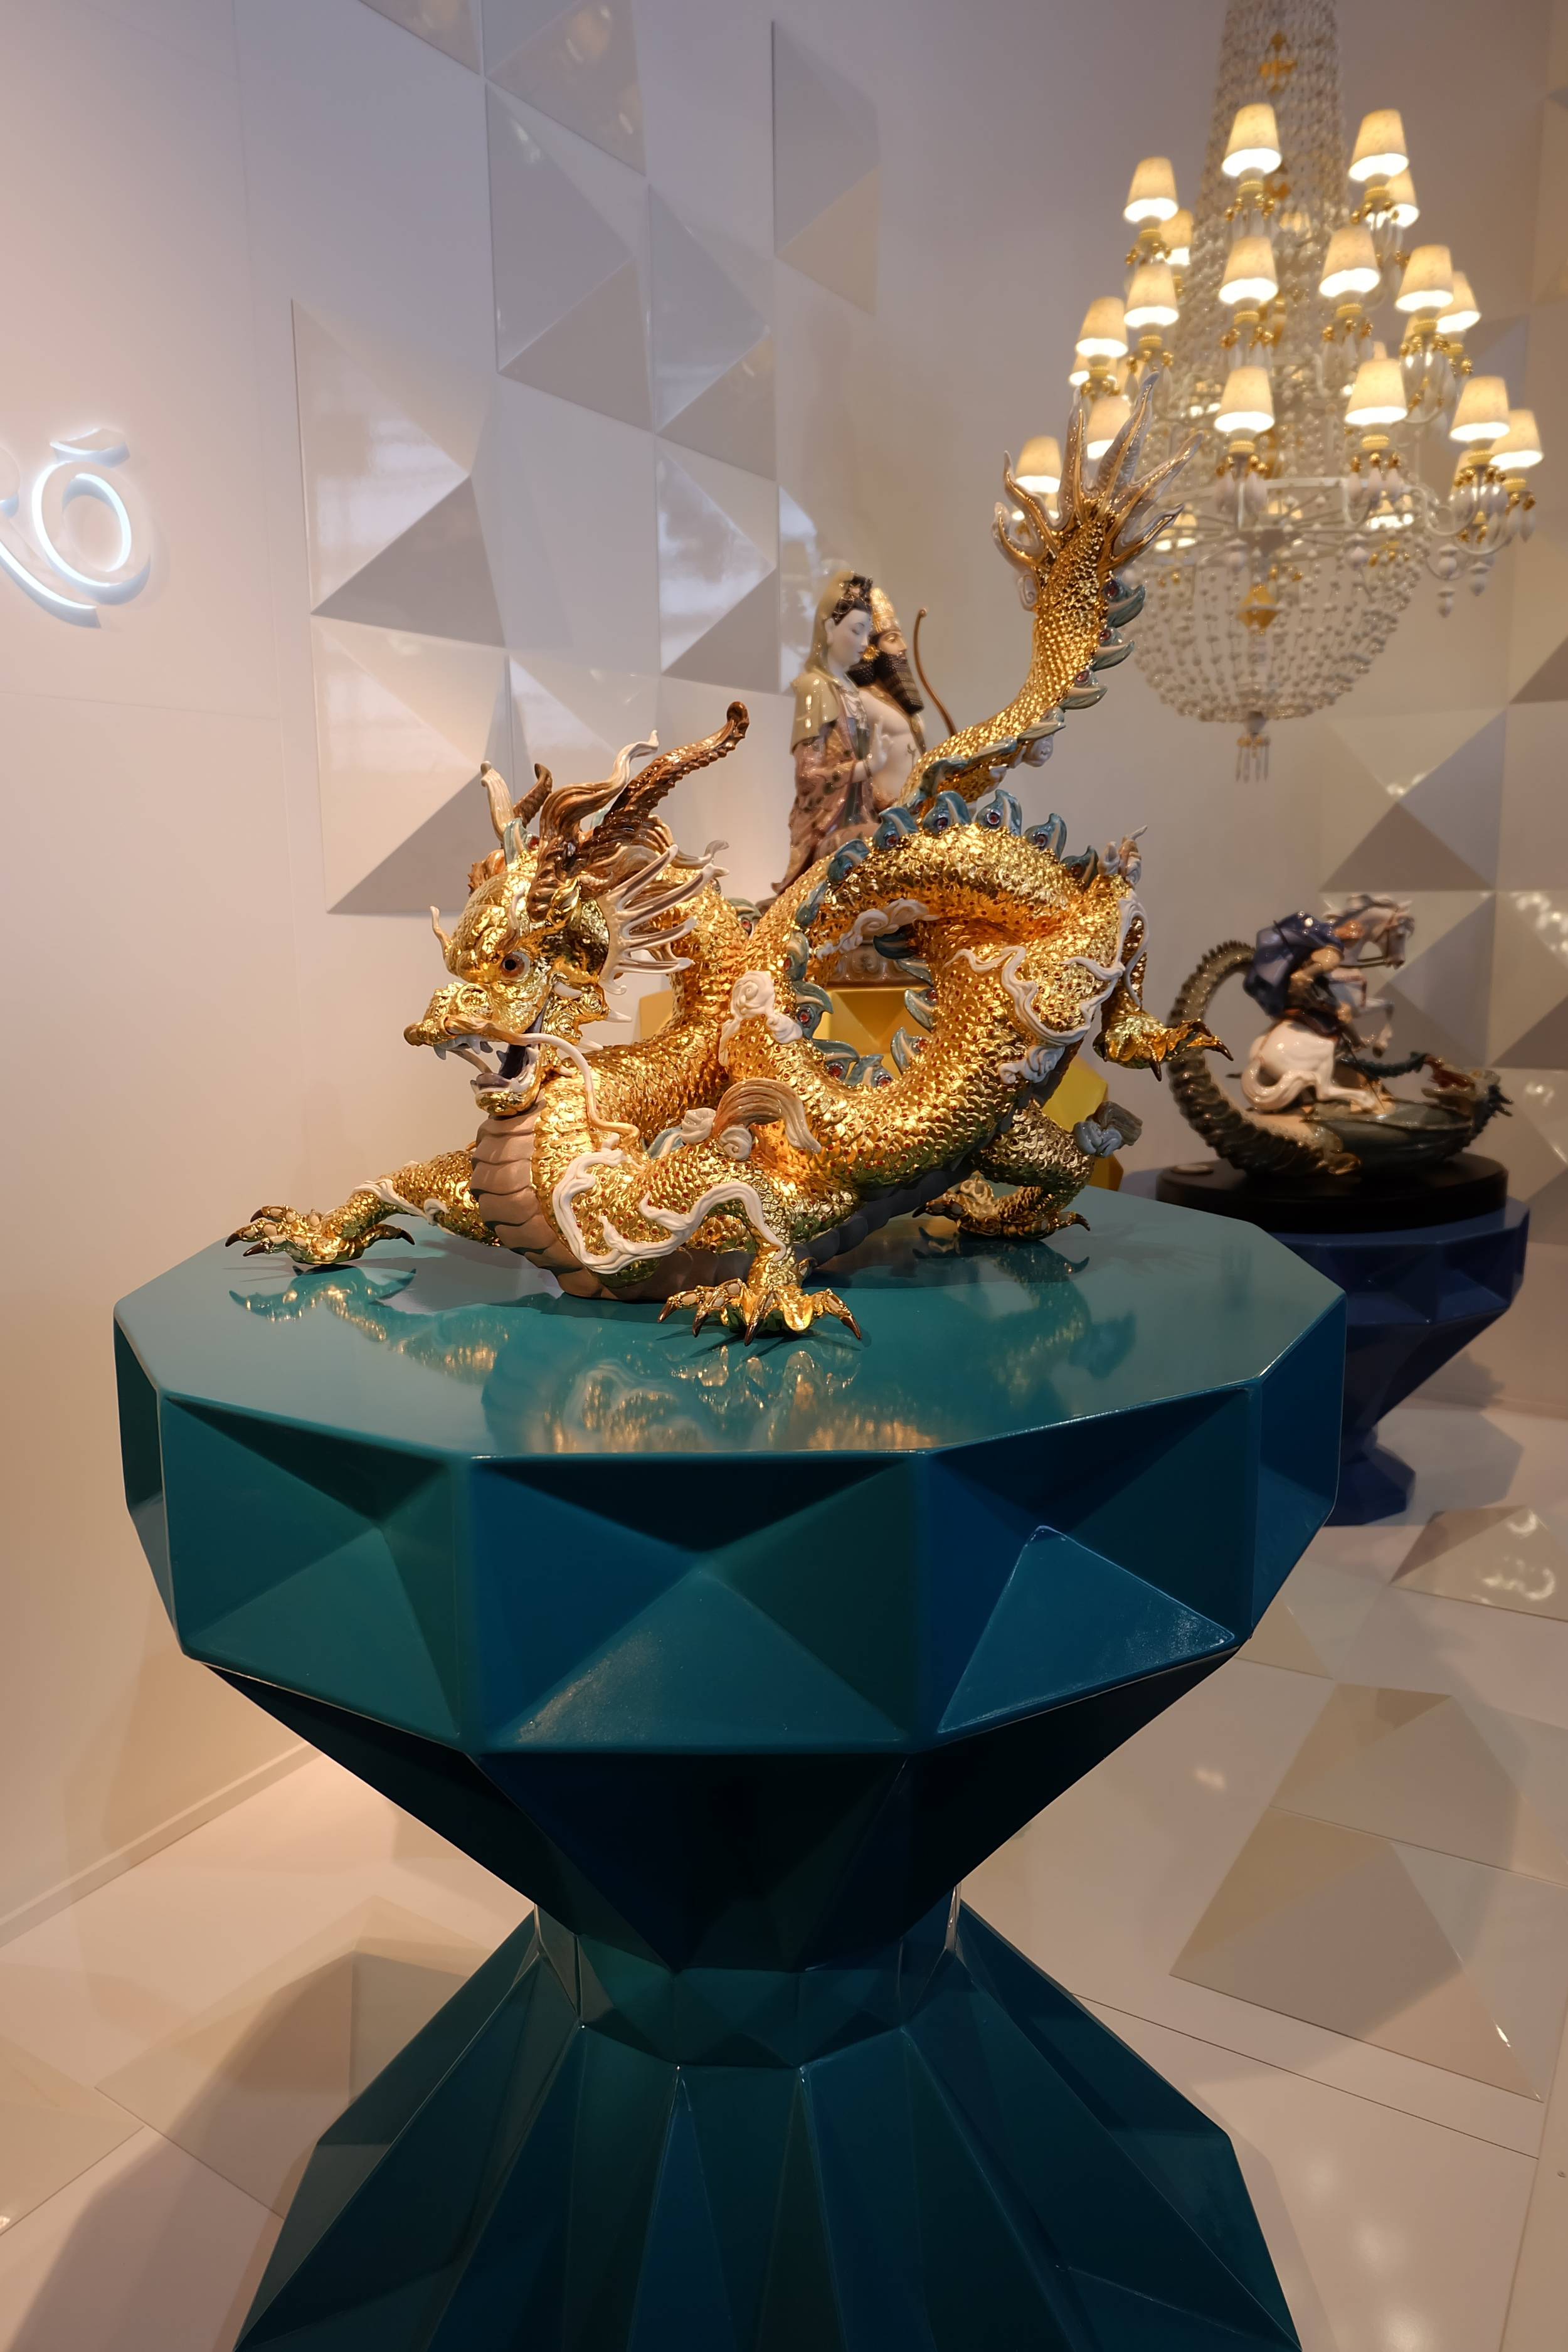 Maison & Objet 2016 Highlights - Dragon statue - refined objects for home decor | MSH Agency